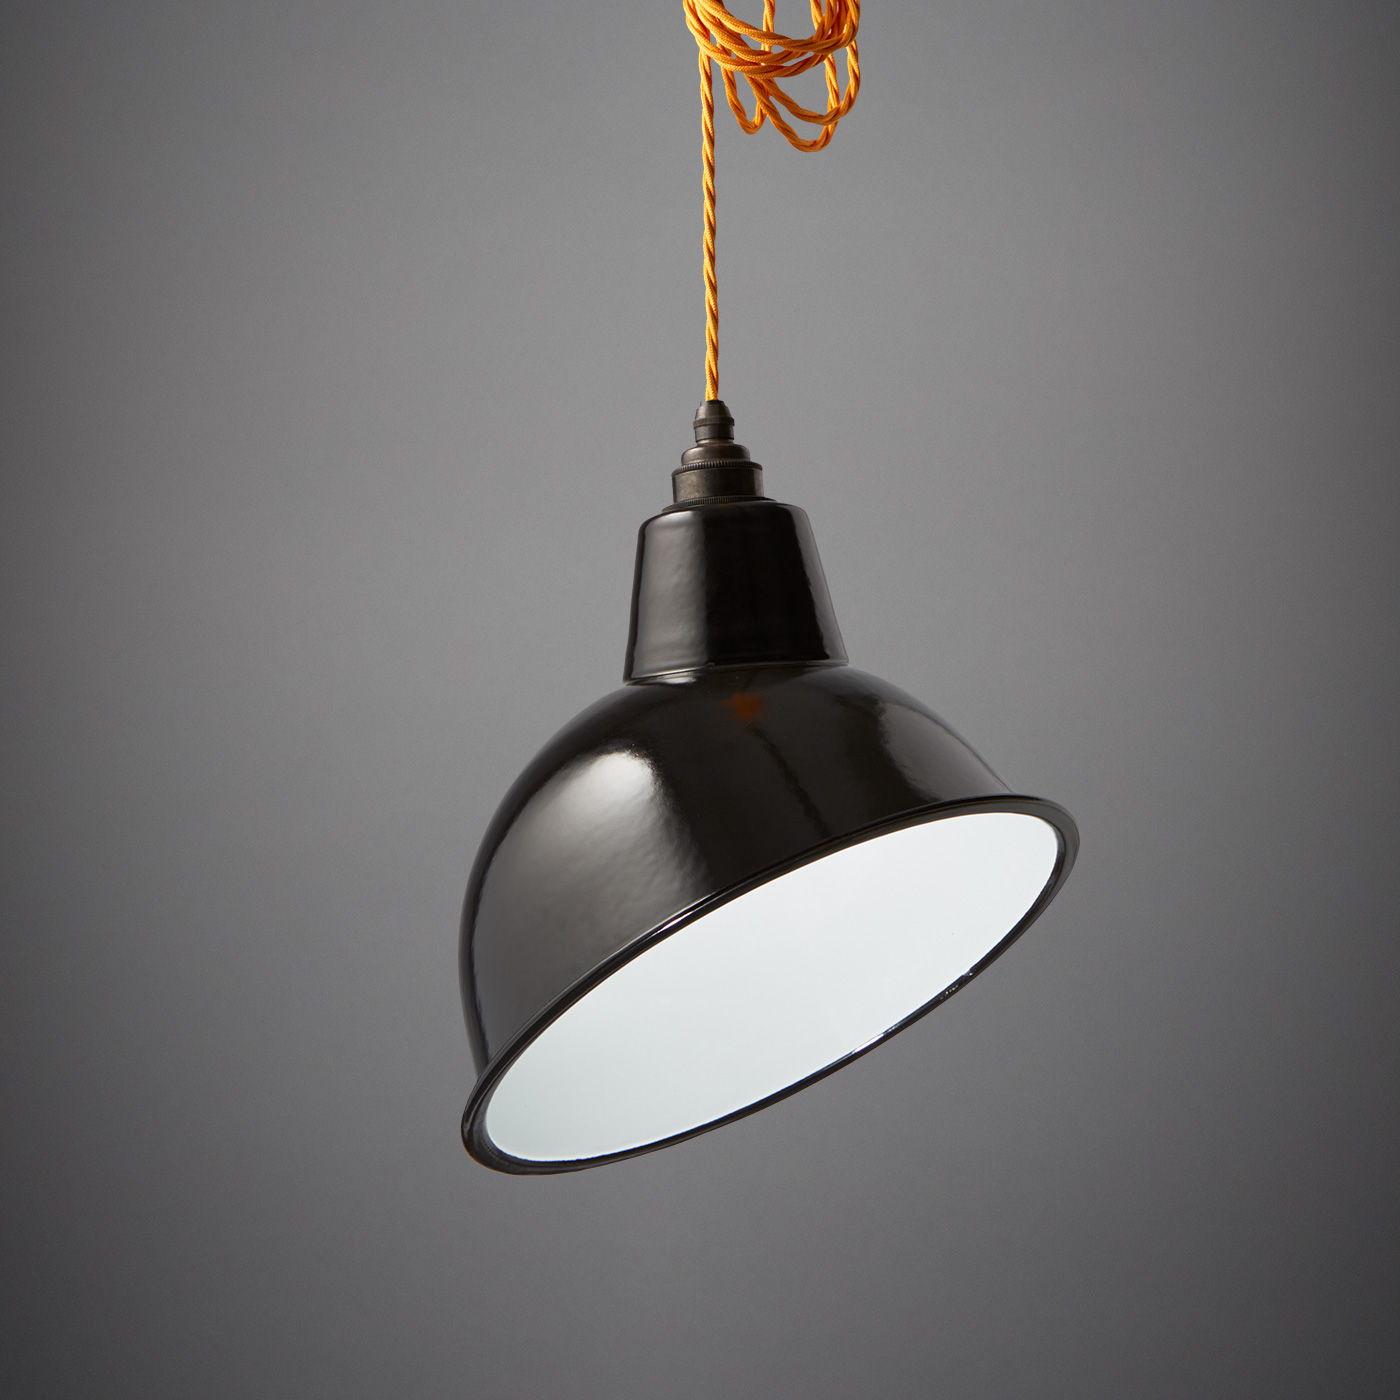 Nostalgia Lights Angled Cloche Enamel Shade Black